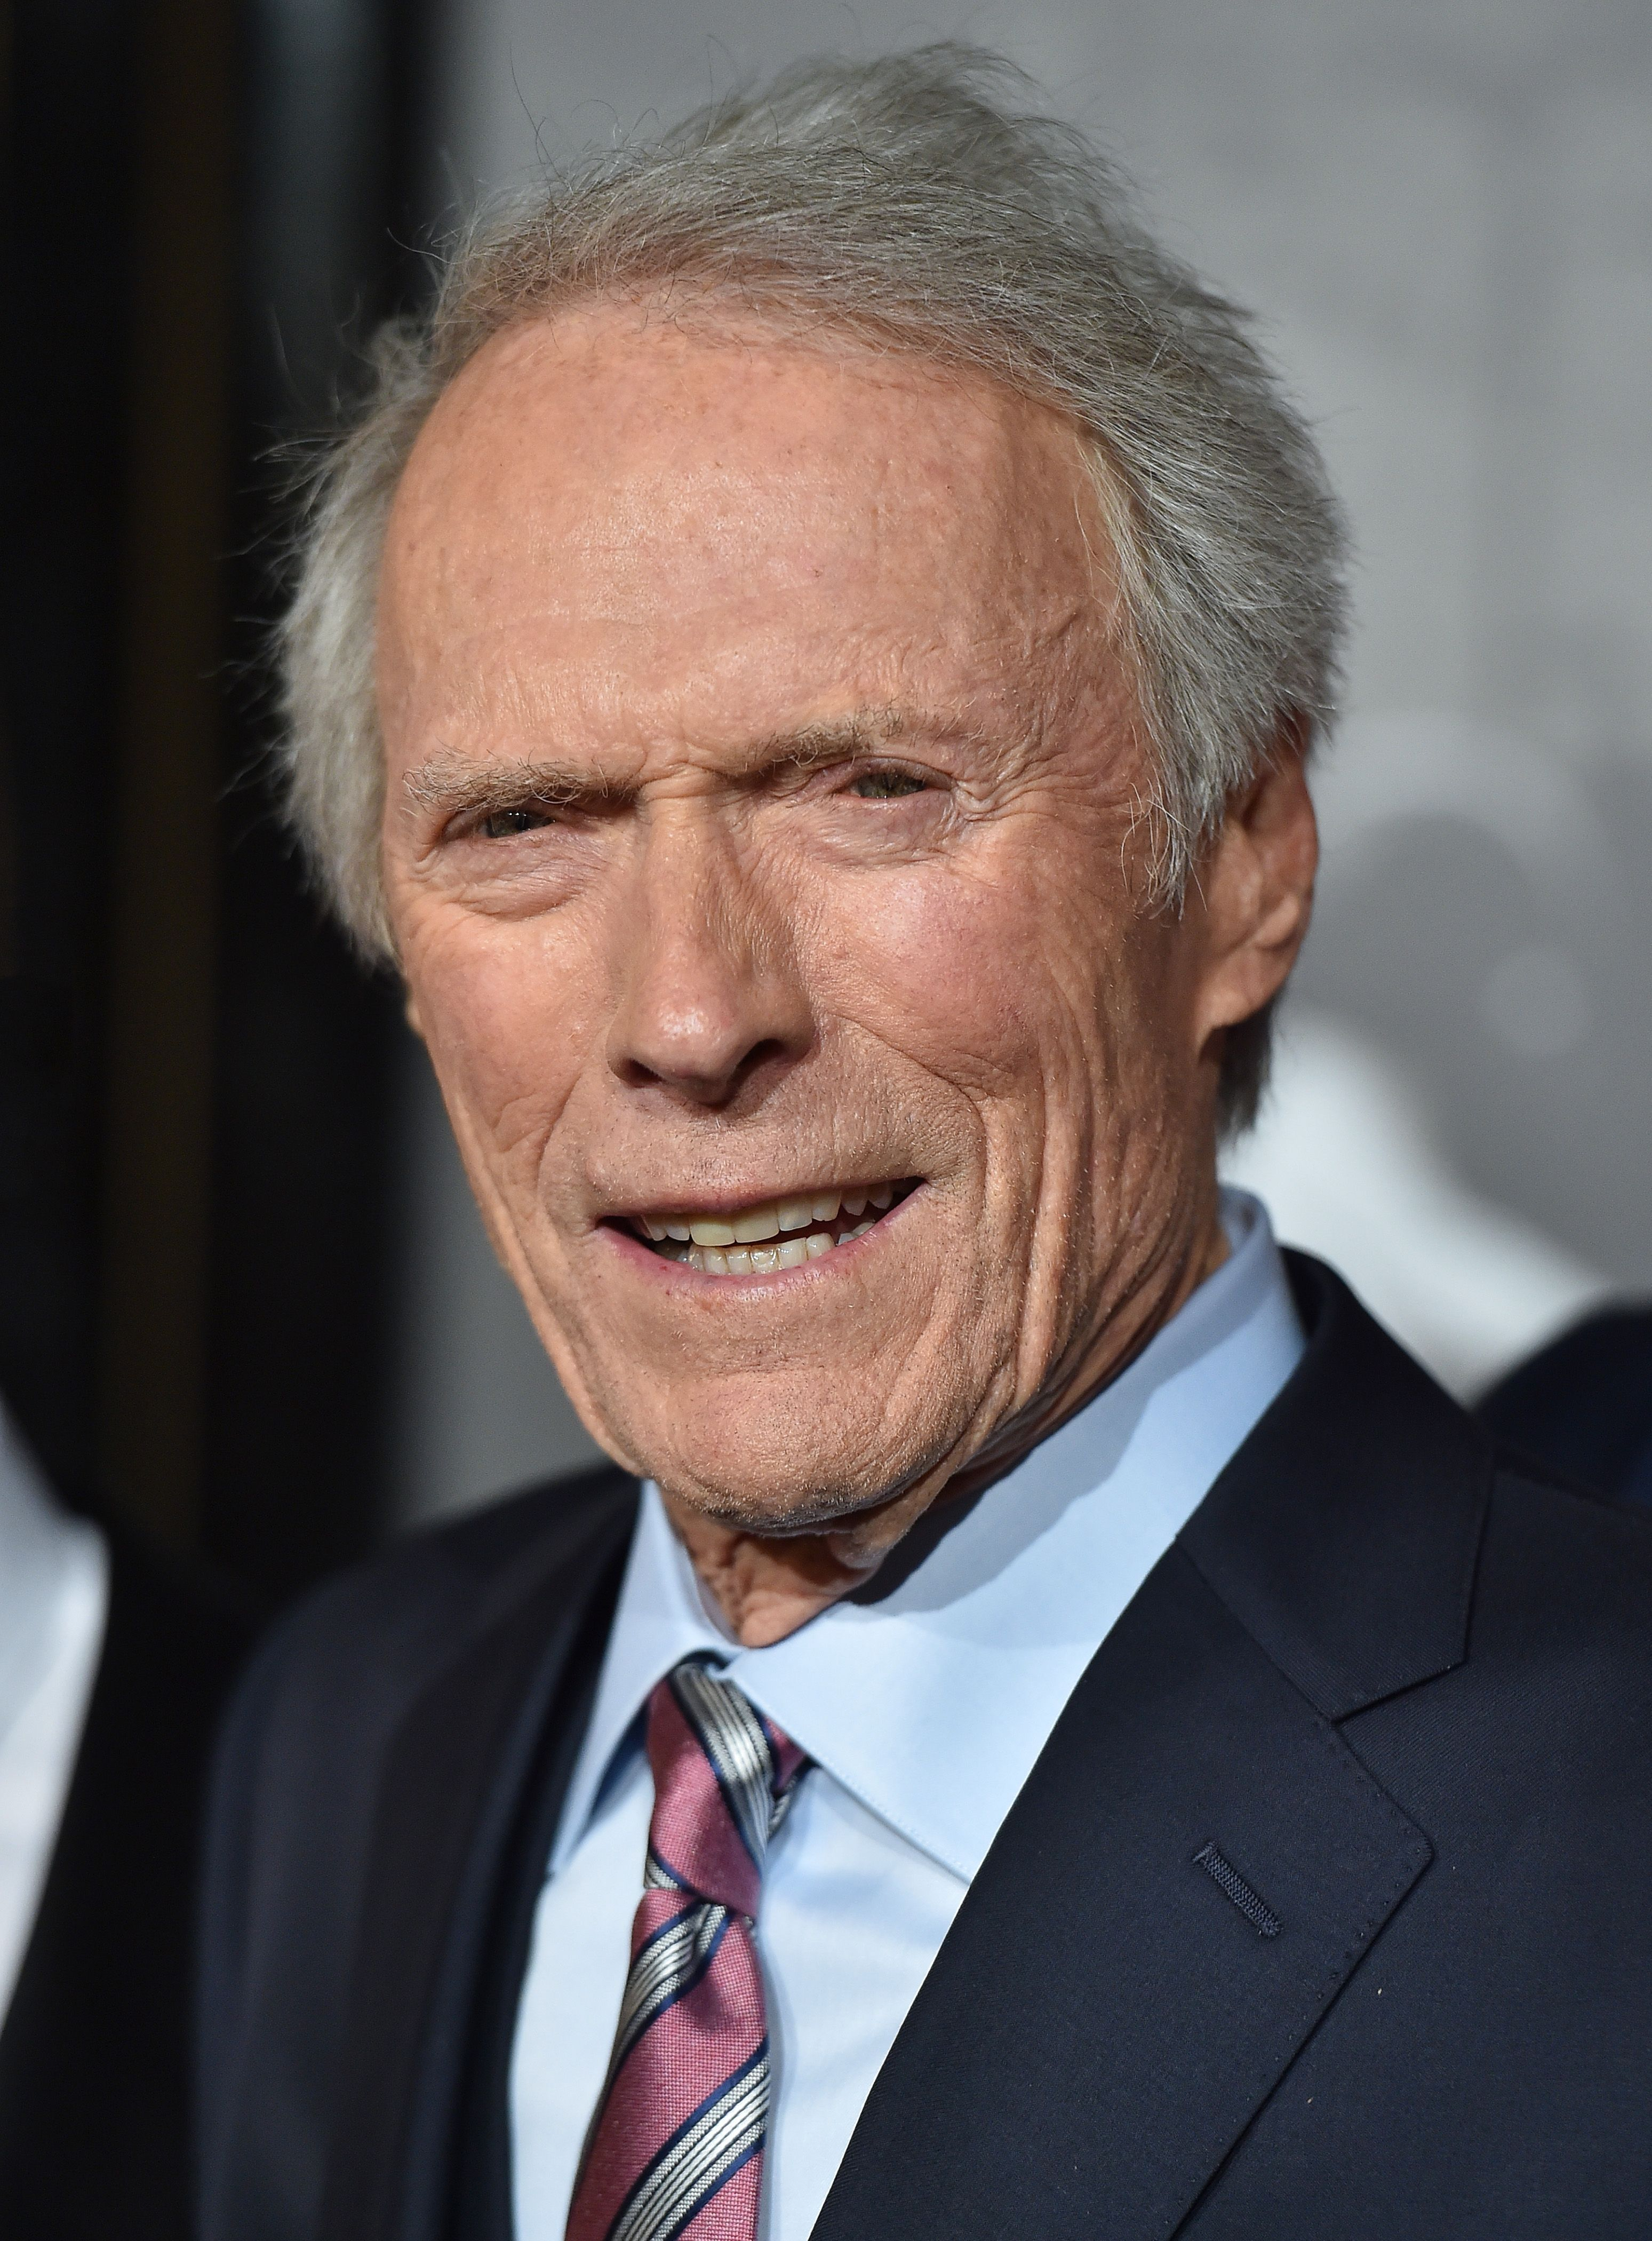 Clint Eastwood at 87 Even as he approaches 90, the actor/director continues making fantastic drama. His most recent film The Mule is no exception.